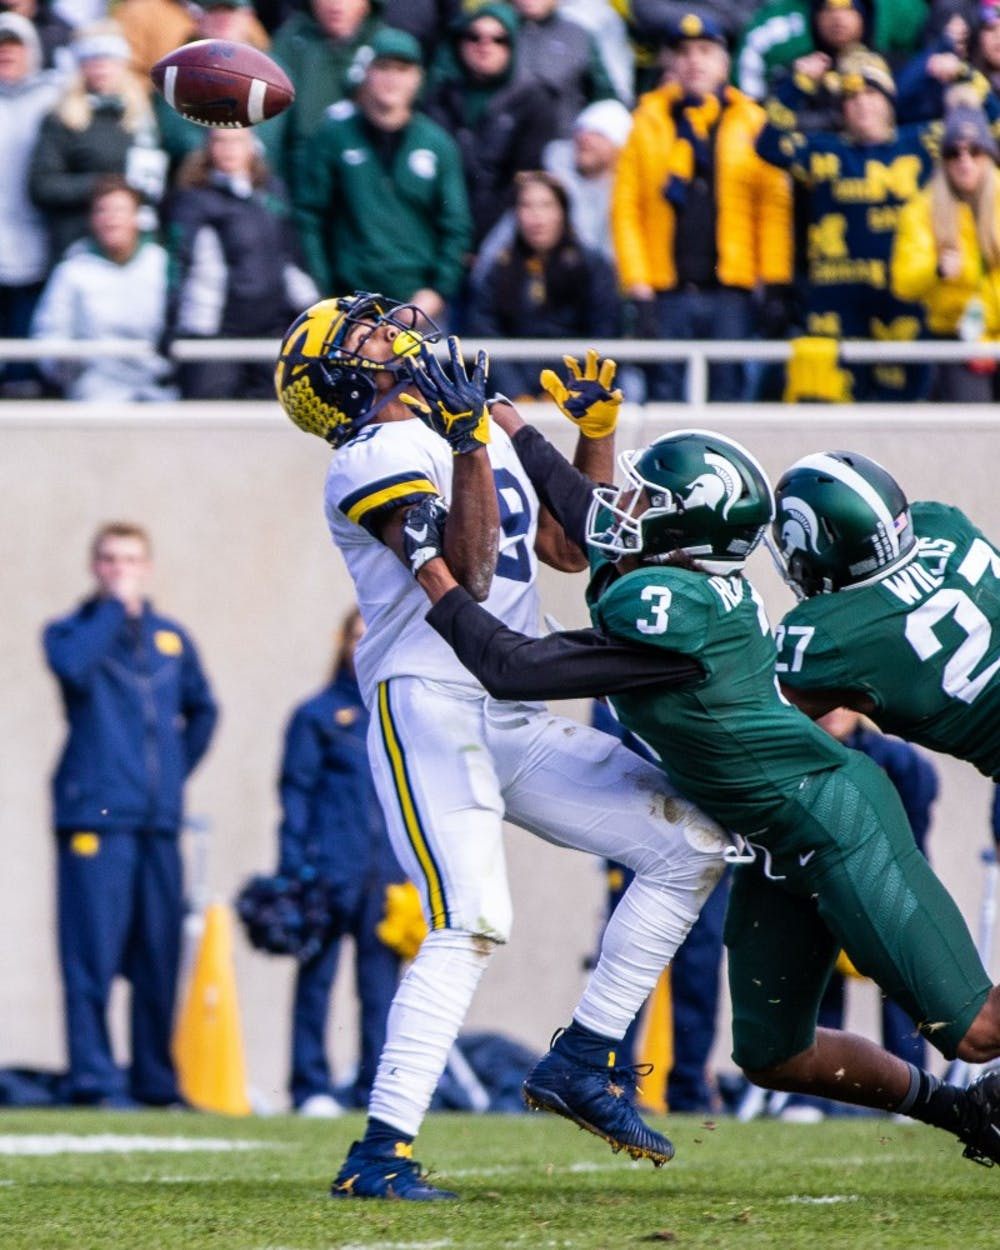 <p>Then-reshman safety Xavier Henderson (3) defends a pass to Michigan receiver Donovan Peoples-Jones (9) during the game at Spartan Stadium on Oct. 20, 2018. The Wolverines defeated the Spartans, 21-7.</p>